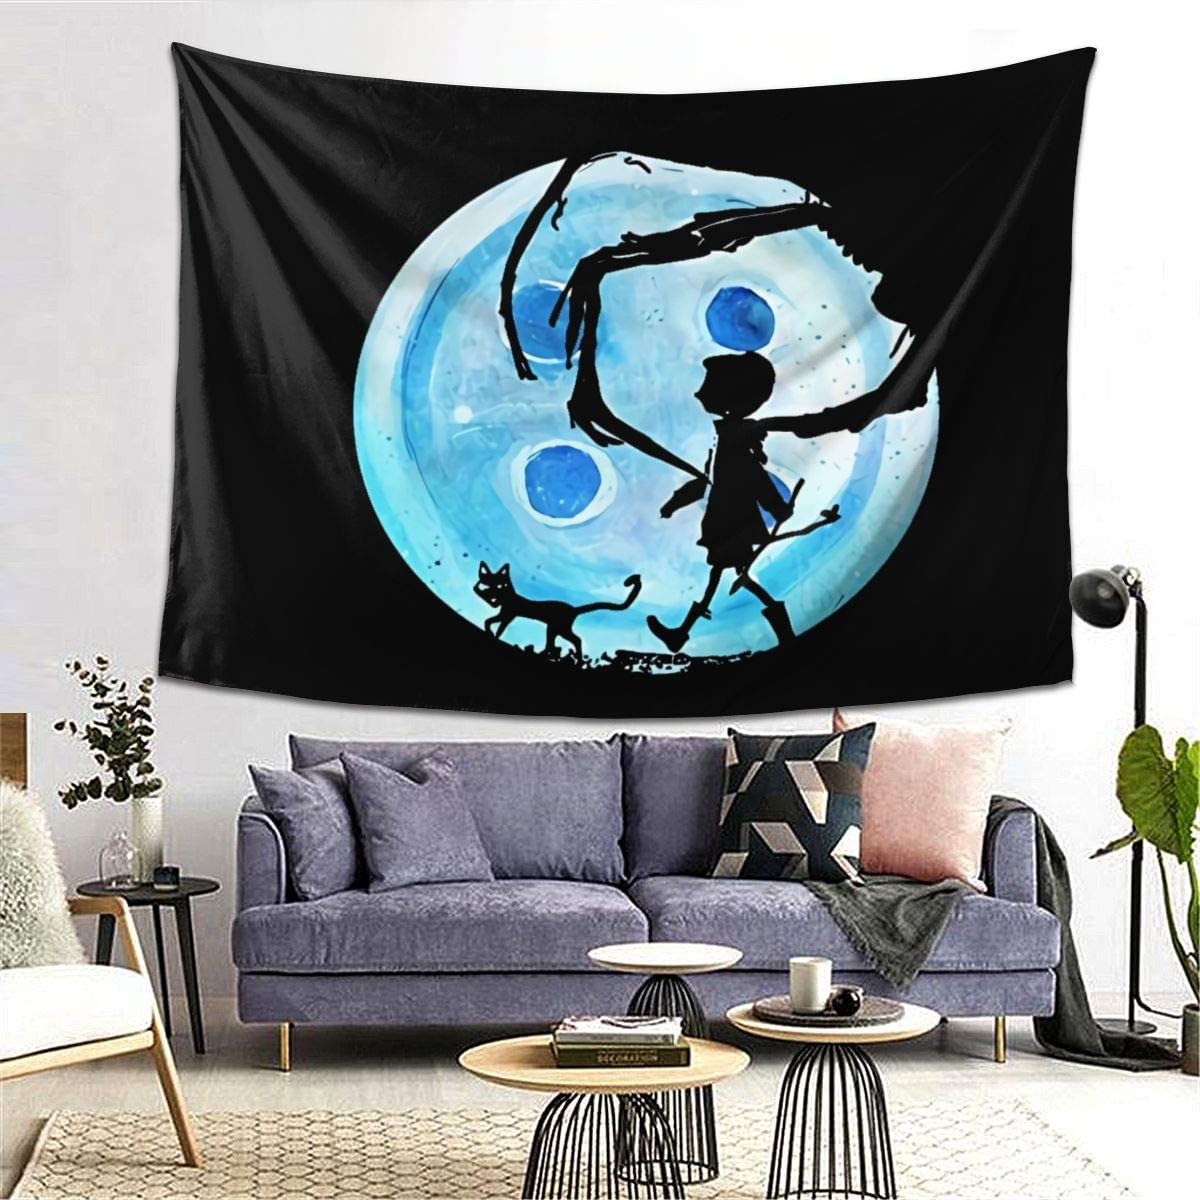 Amazon Com Winsle Modern Art Tapestry Coraline Blue Full Moon Nightmare Cat Home Decor Wall Hanging For Living Room Bedroom Dorm 60 X 51inch Home Kitchen